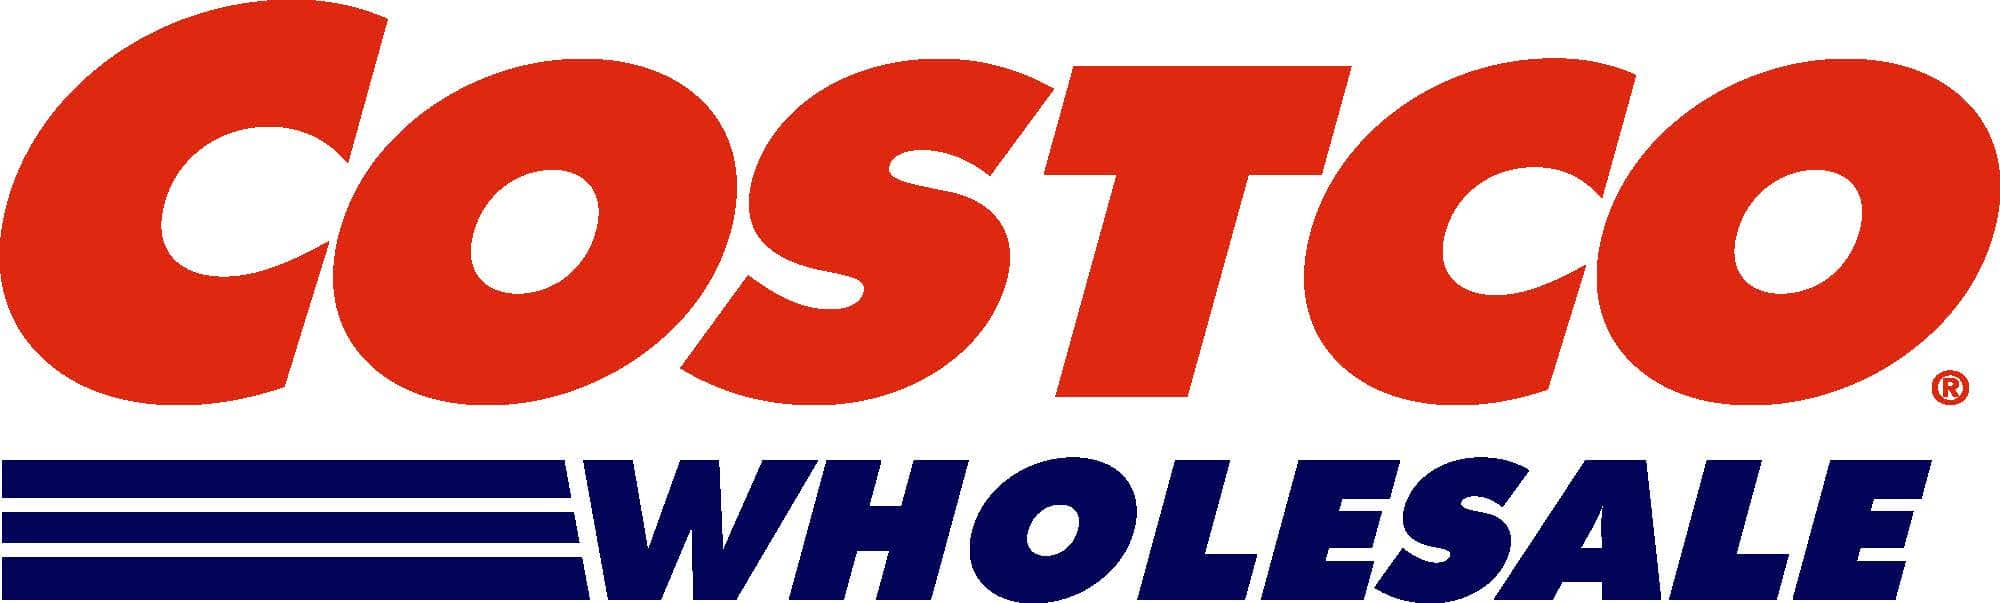 Costco 3 weeks of Black Friday coupons Online & B&M starting 11/11 to 11/28